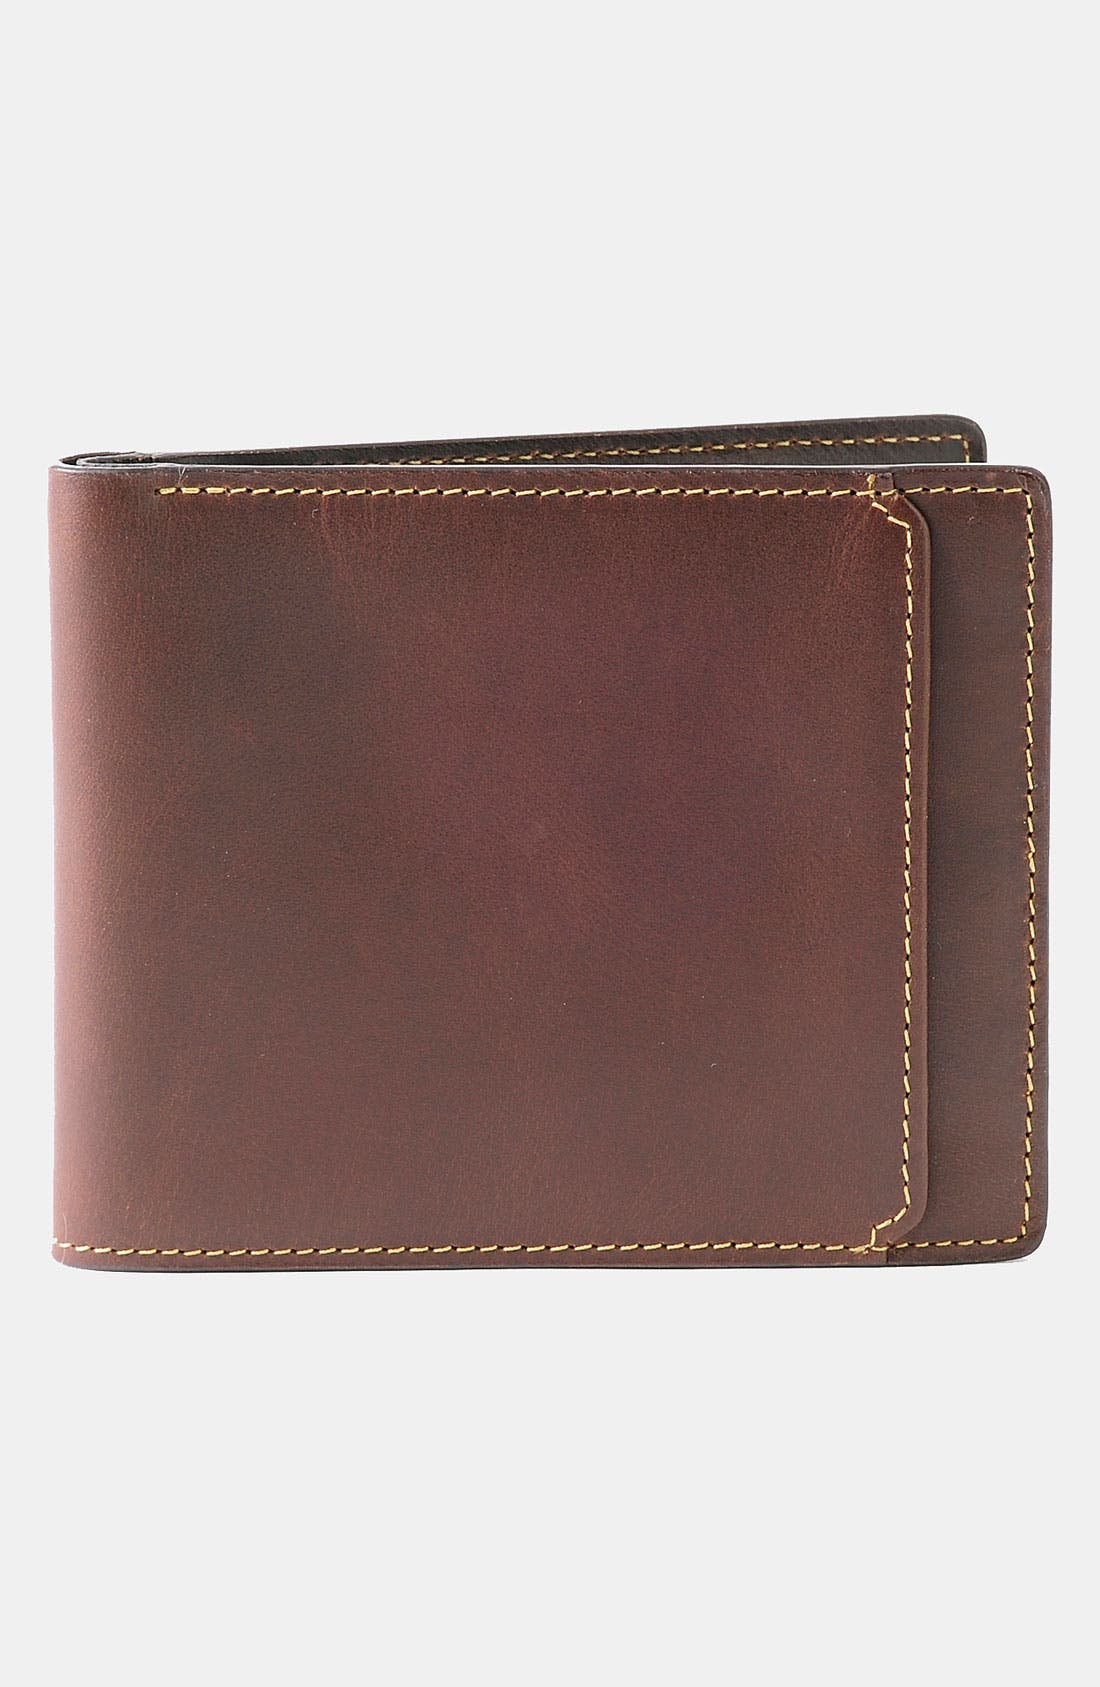 'Bryant' RFID Blocker Slimfold Wallet,                         Main,                         color,